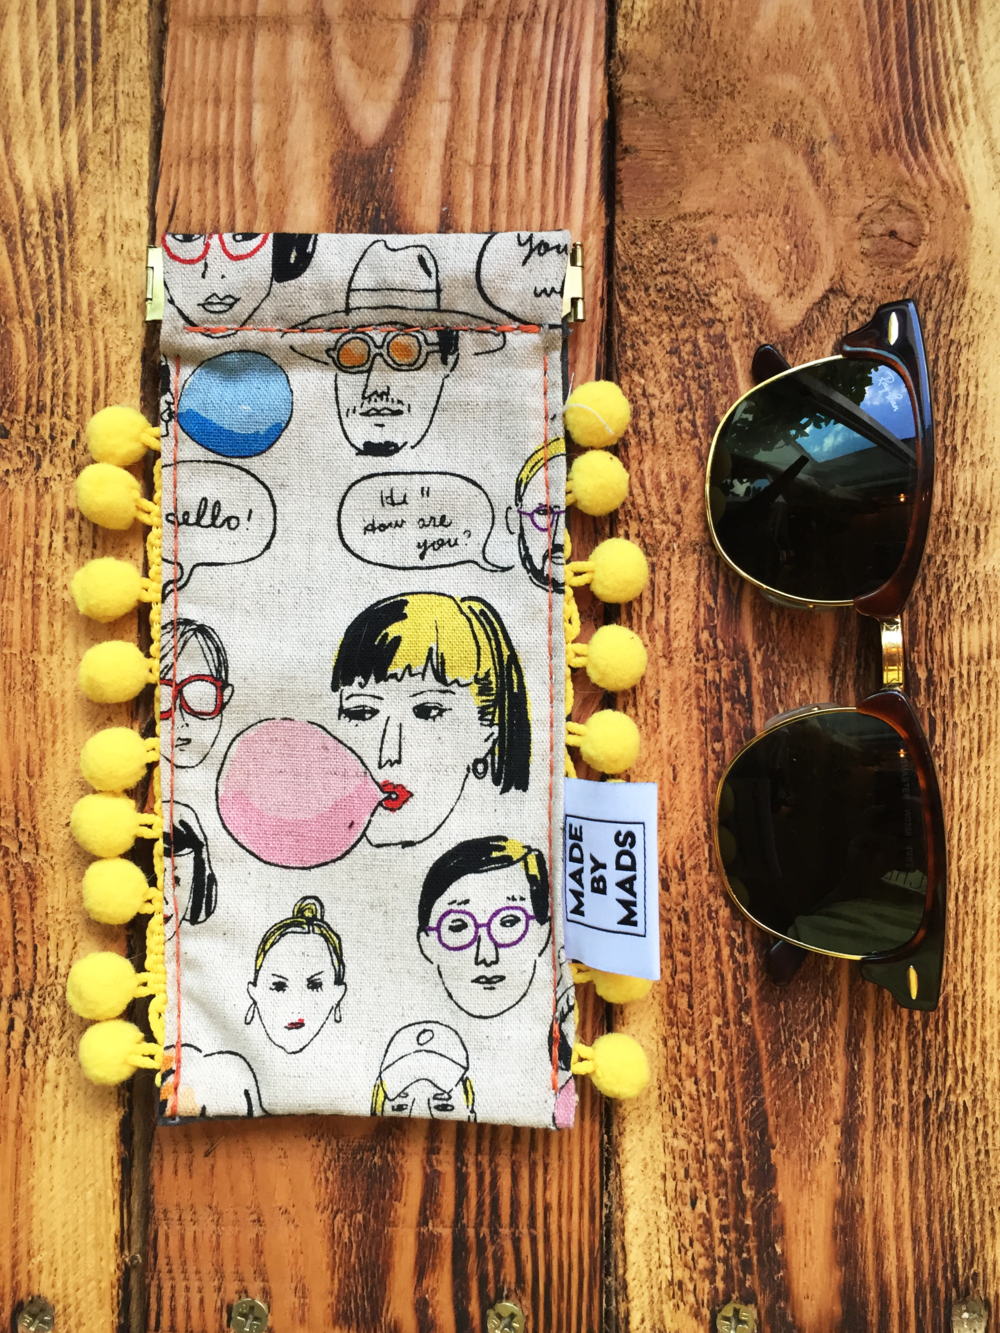 Bliss with Faces  - The Bliss with Faces Sunglass Case is the perfect accessory for the summer! She has a snap clutch which keeps the case sealed and makes it easy to open with one hand.$20.00Interested in buying? Contact Madison at madisondheim@gmail.com for inquiries!